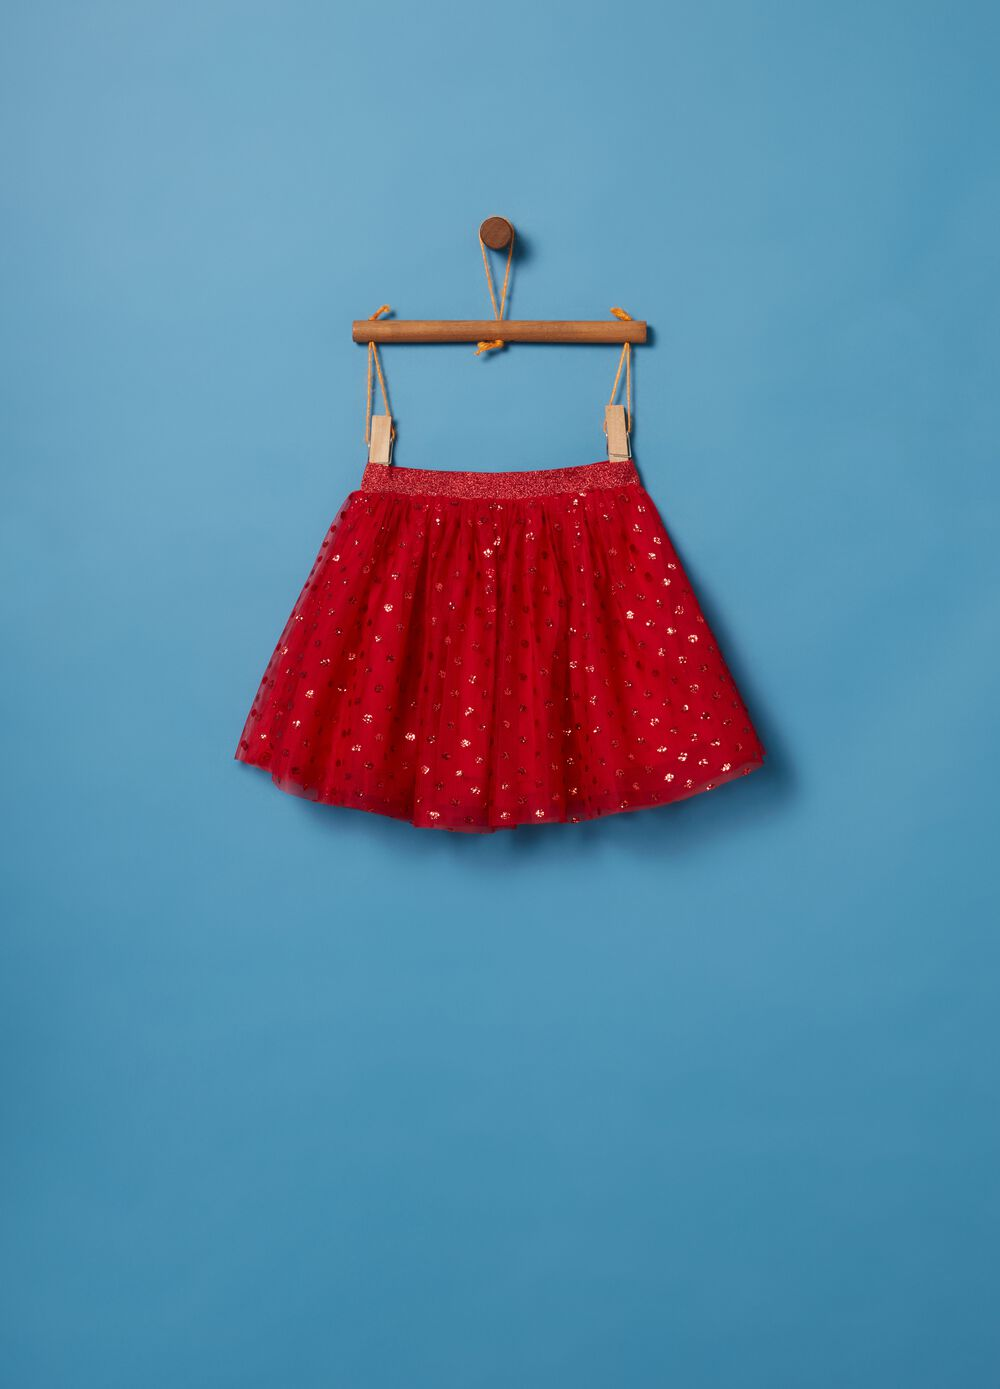 Tulle skirt with glitter and polka dots